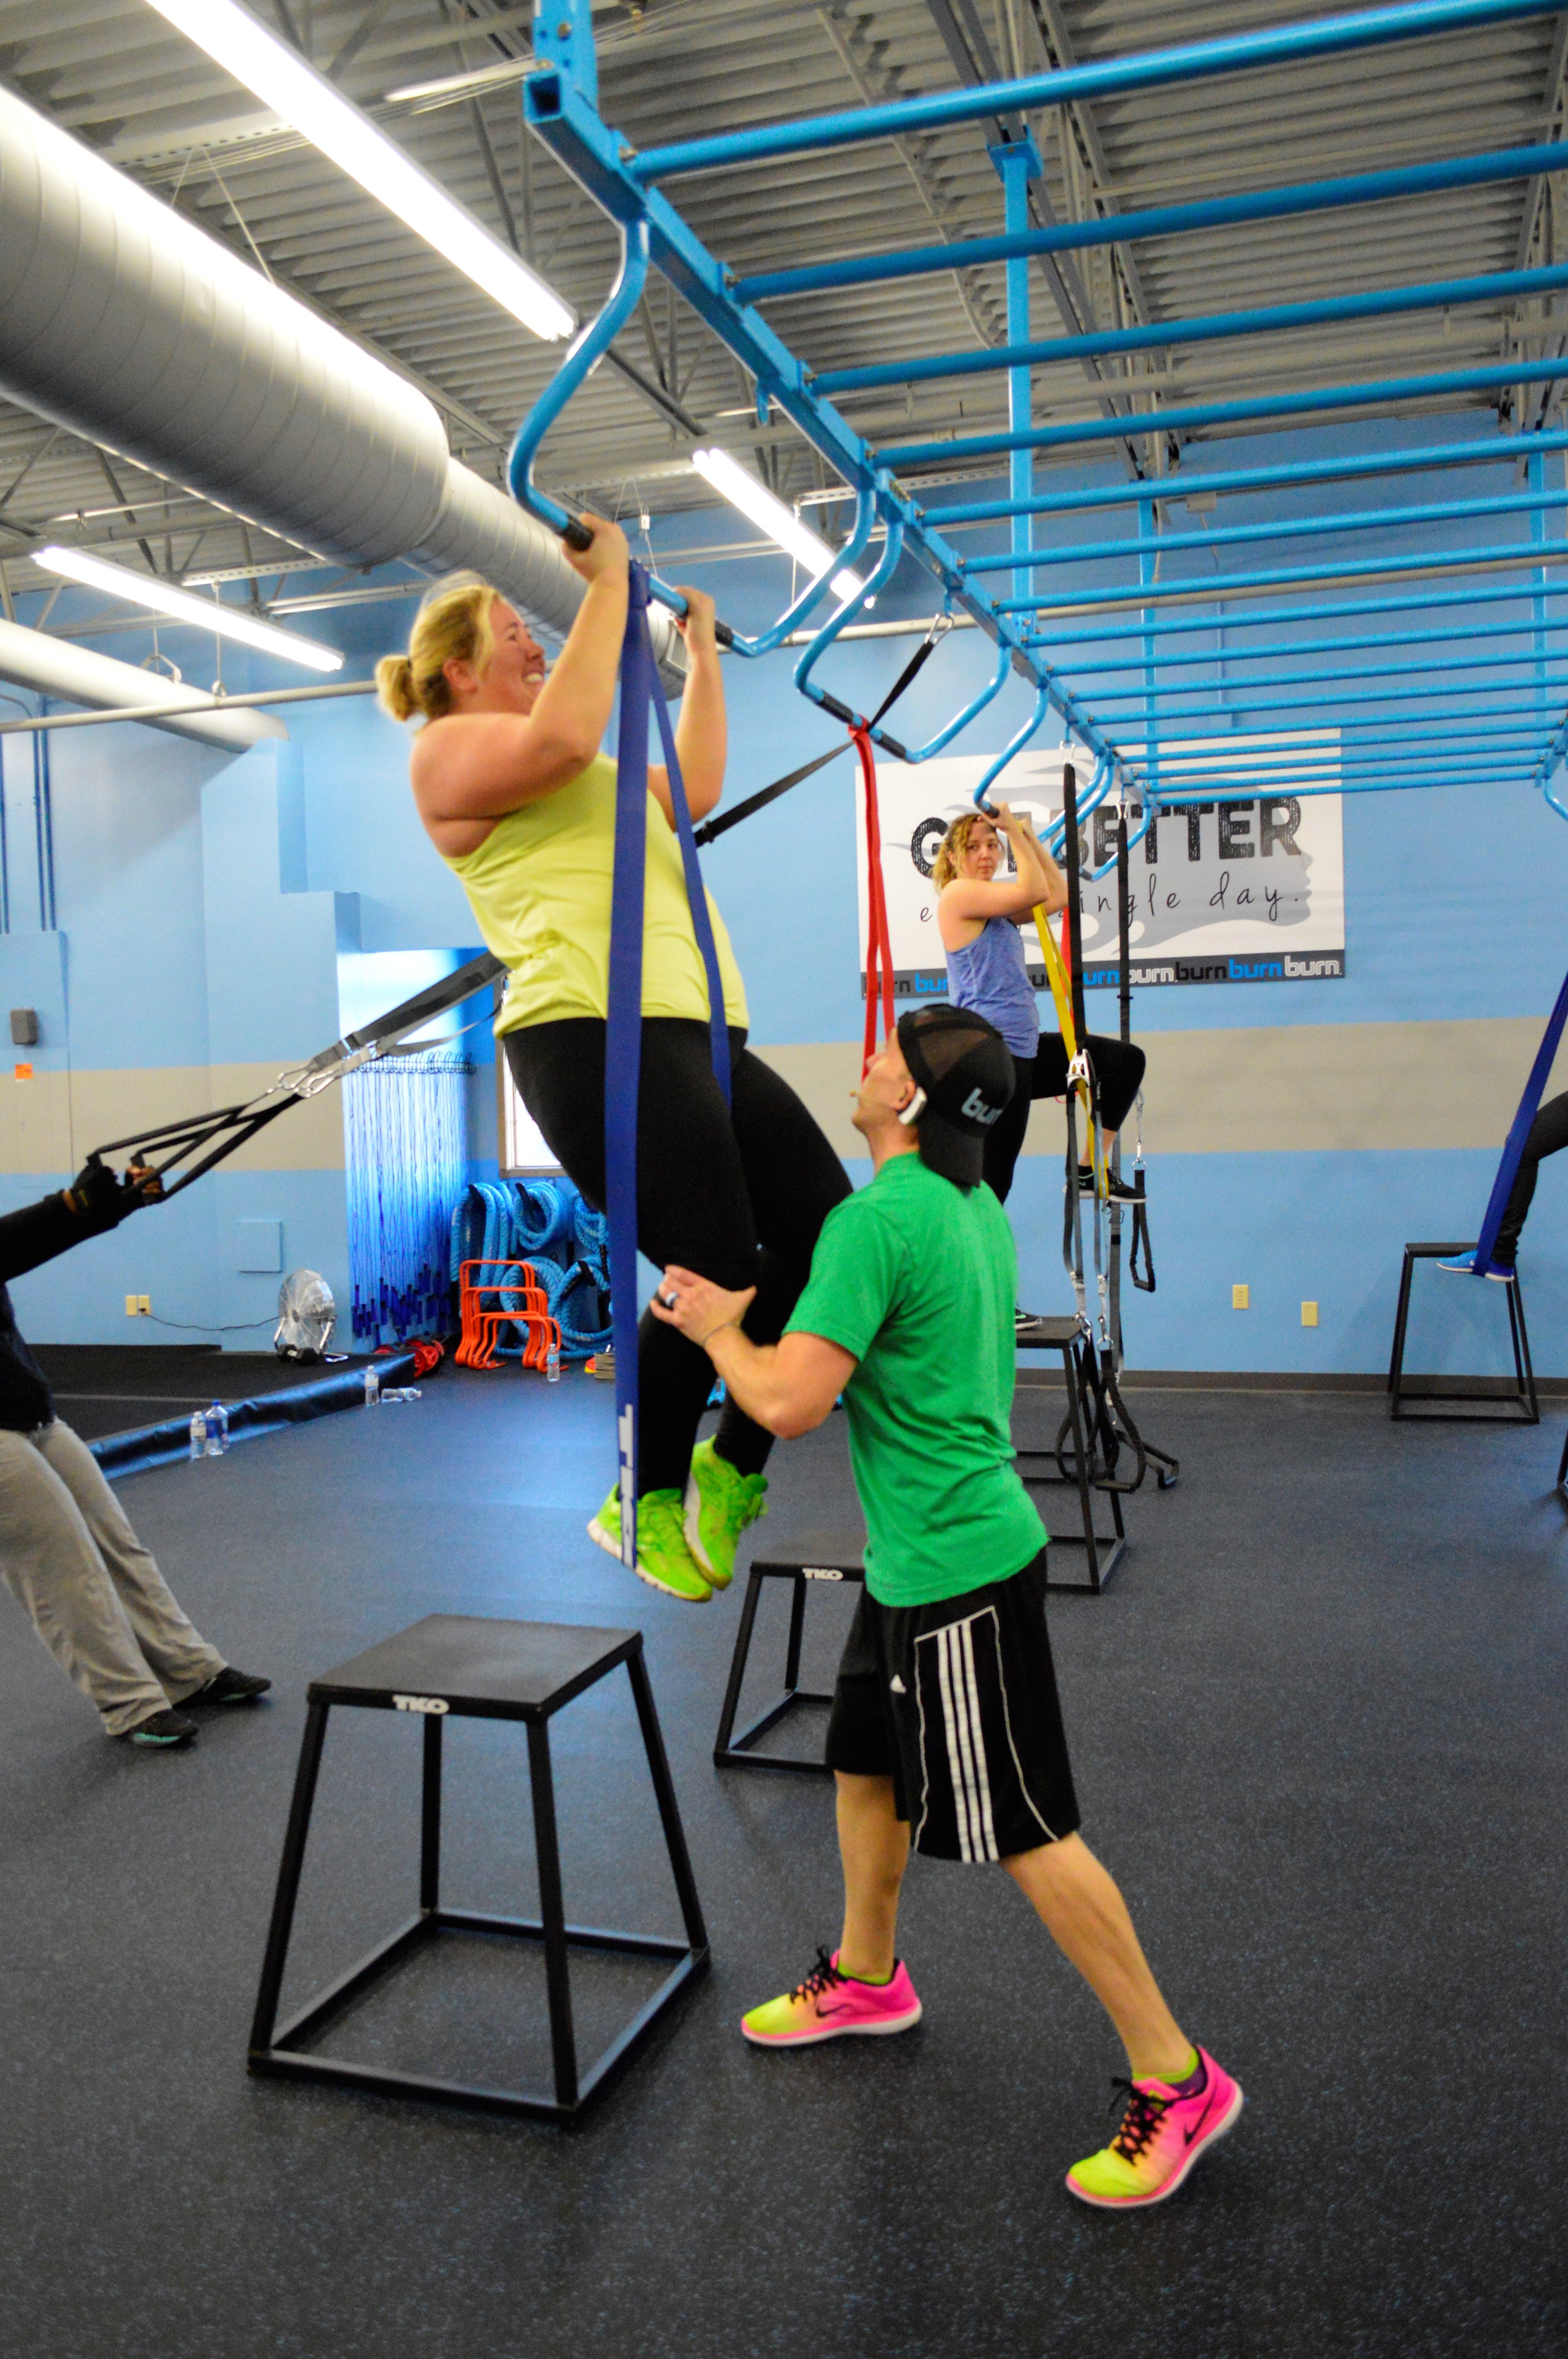 Pin By Burn Boot Camp On A Look Inside Burn Basketball Court Gym Gym Equipment